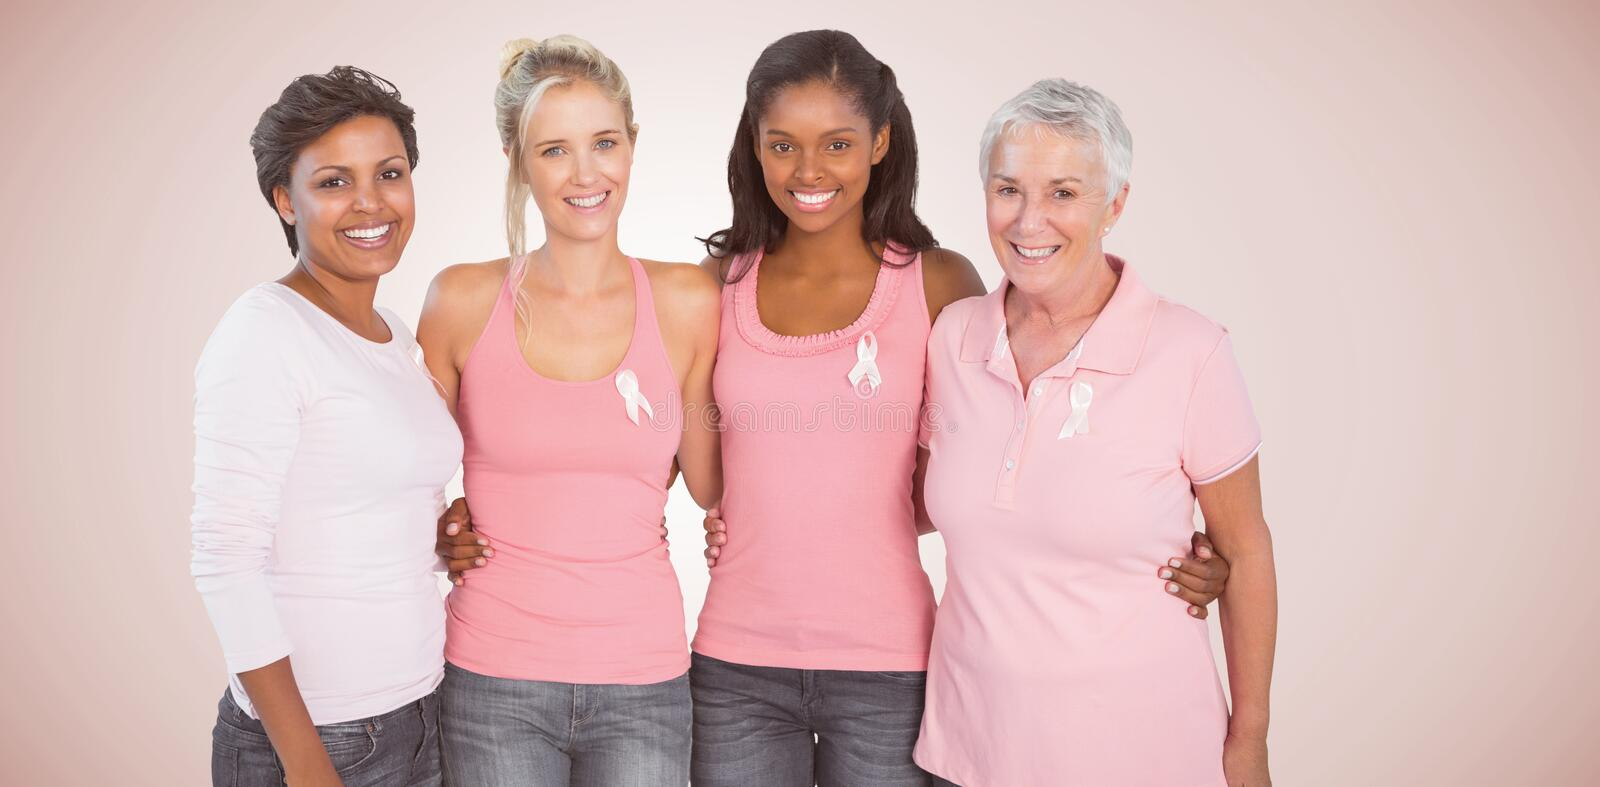 Composite image of portrait of happy women supporting breast cancer social issue. Portrait of happy women supporting breast cancer social issue against neutral stock photos